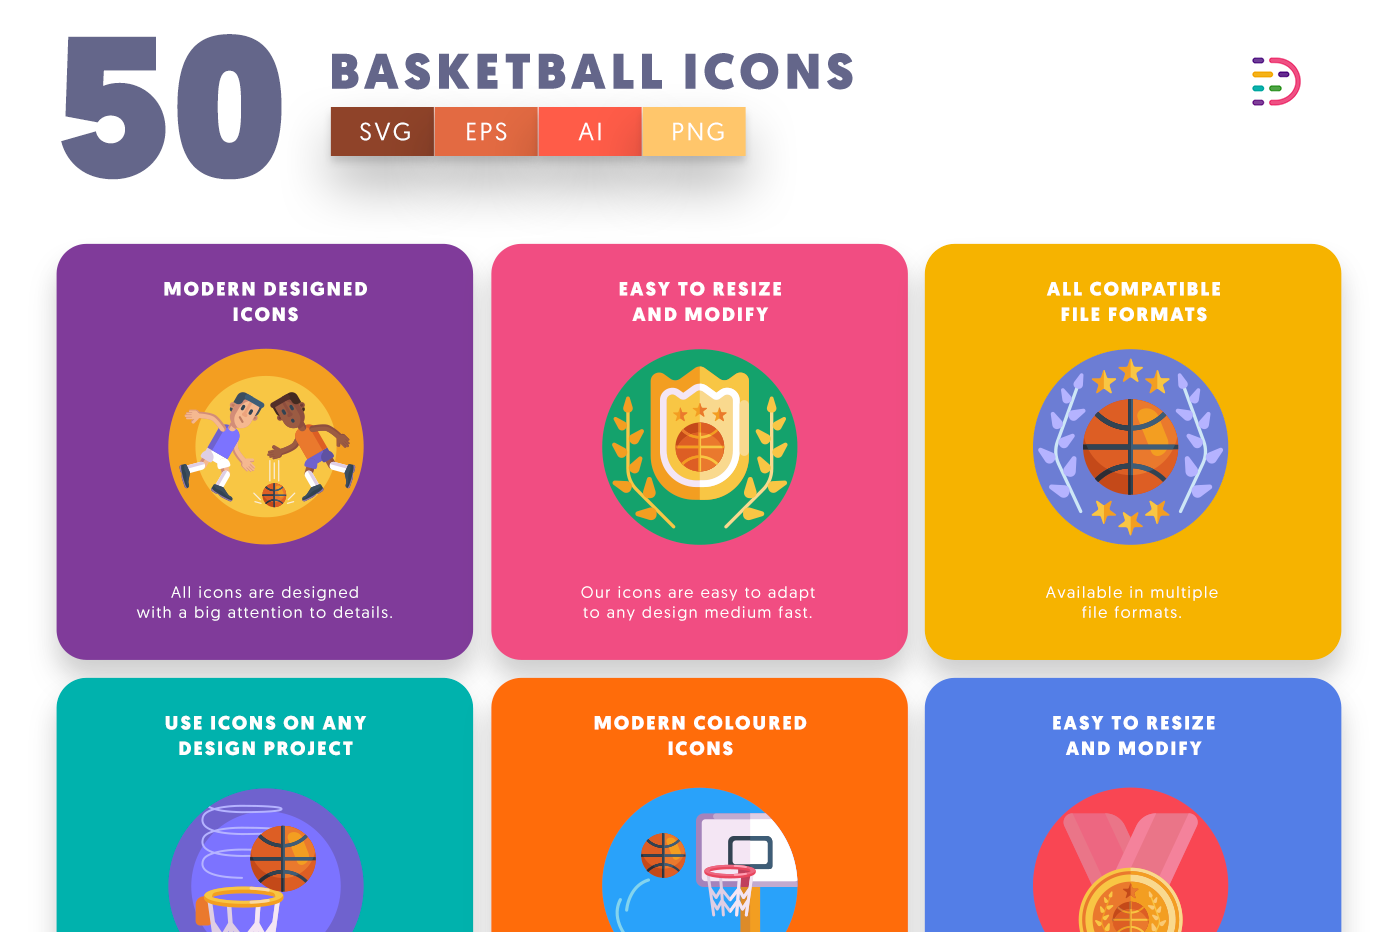 50 Basketball Icons with colored backgrounds